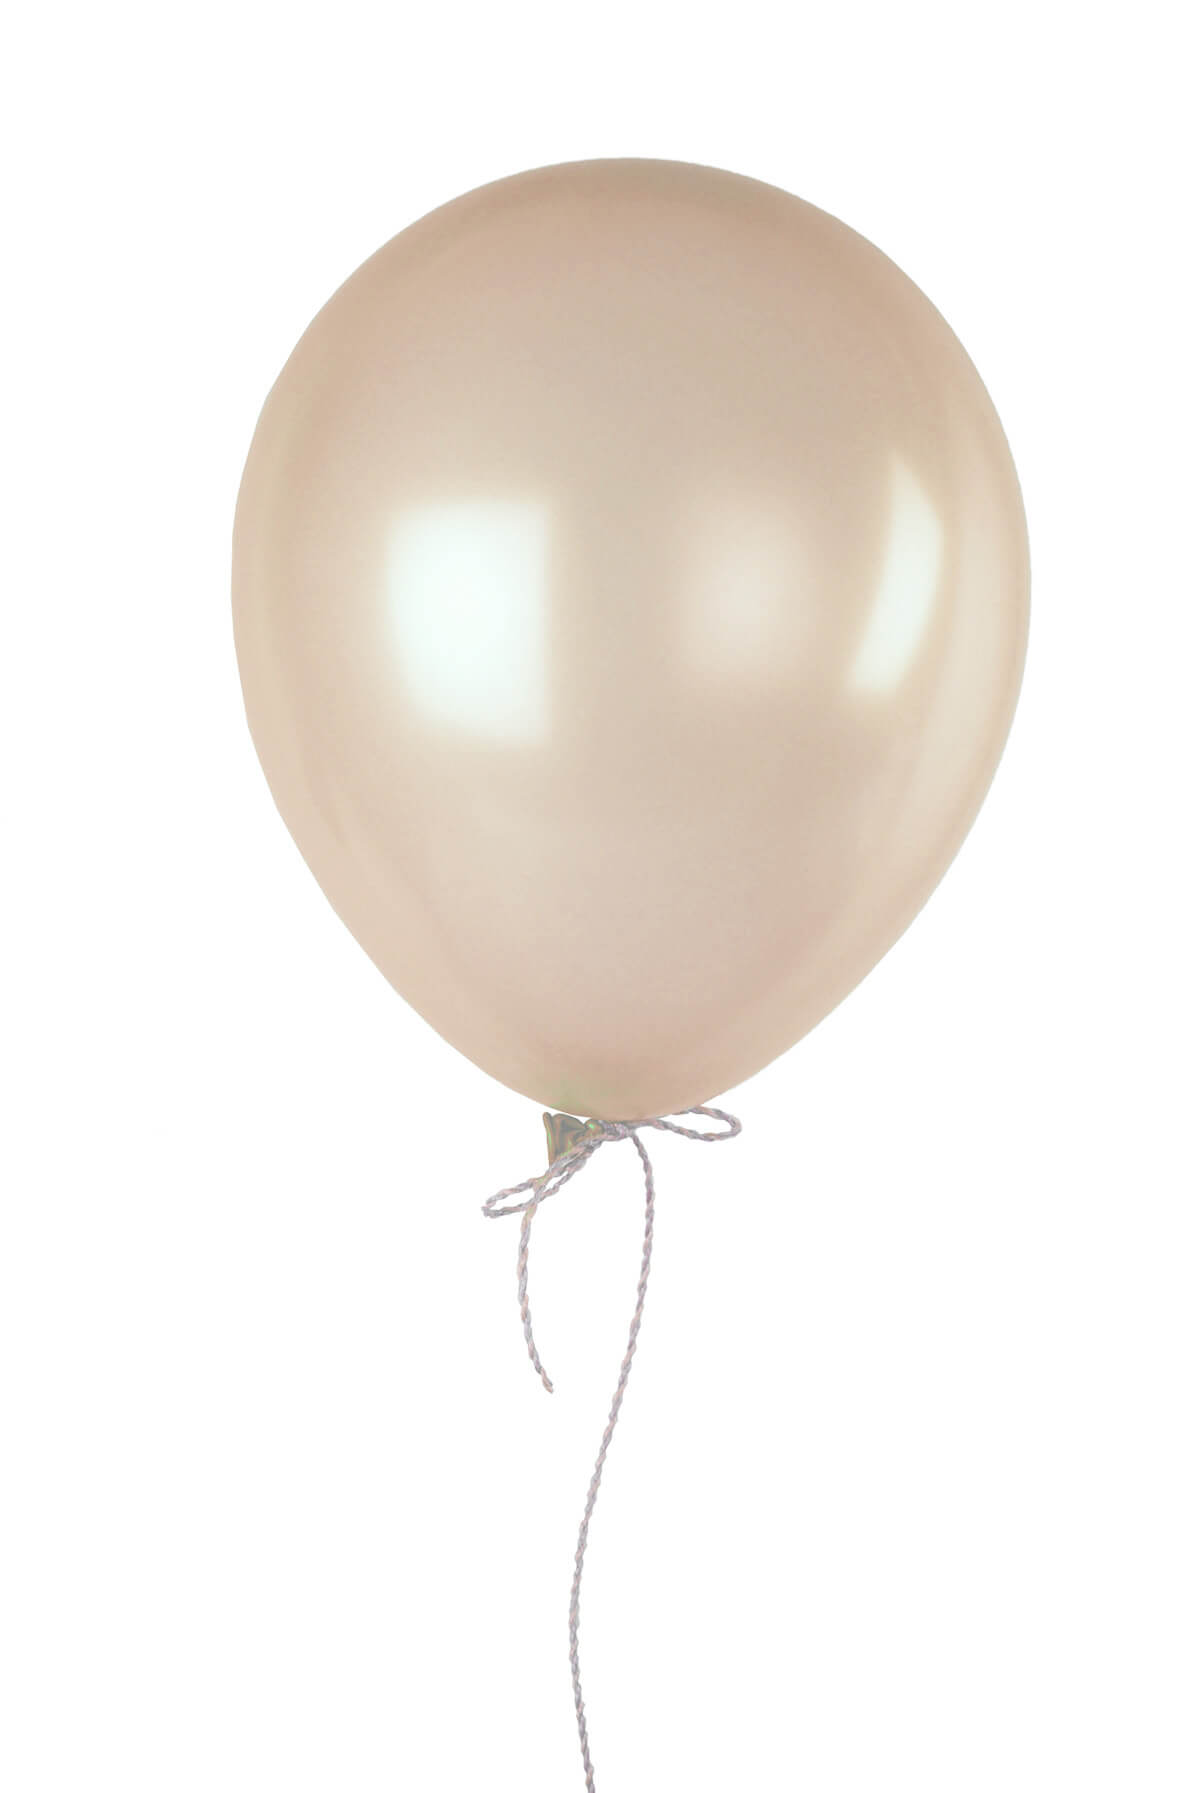 100 Ivory 12 Quot Balloons Pearl Finish